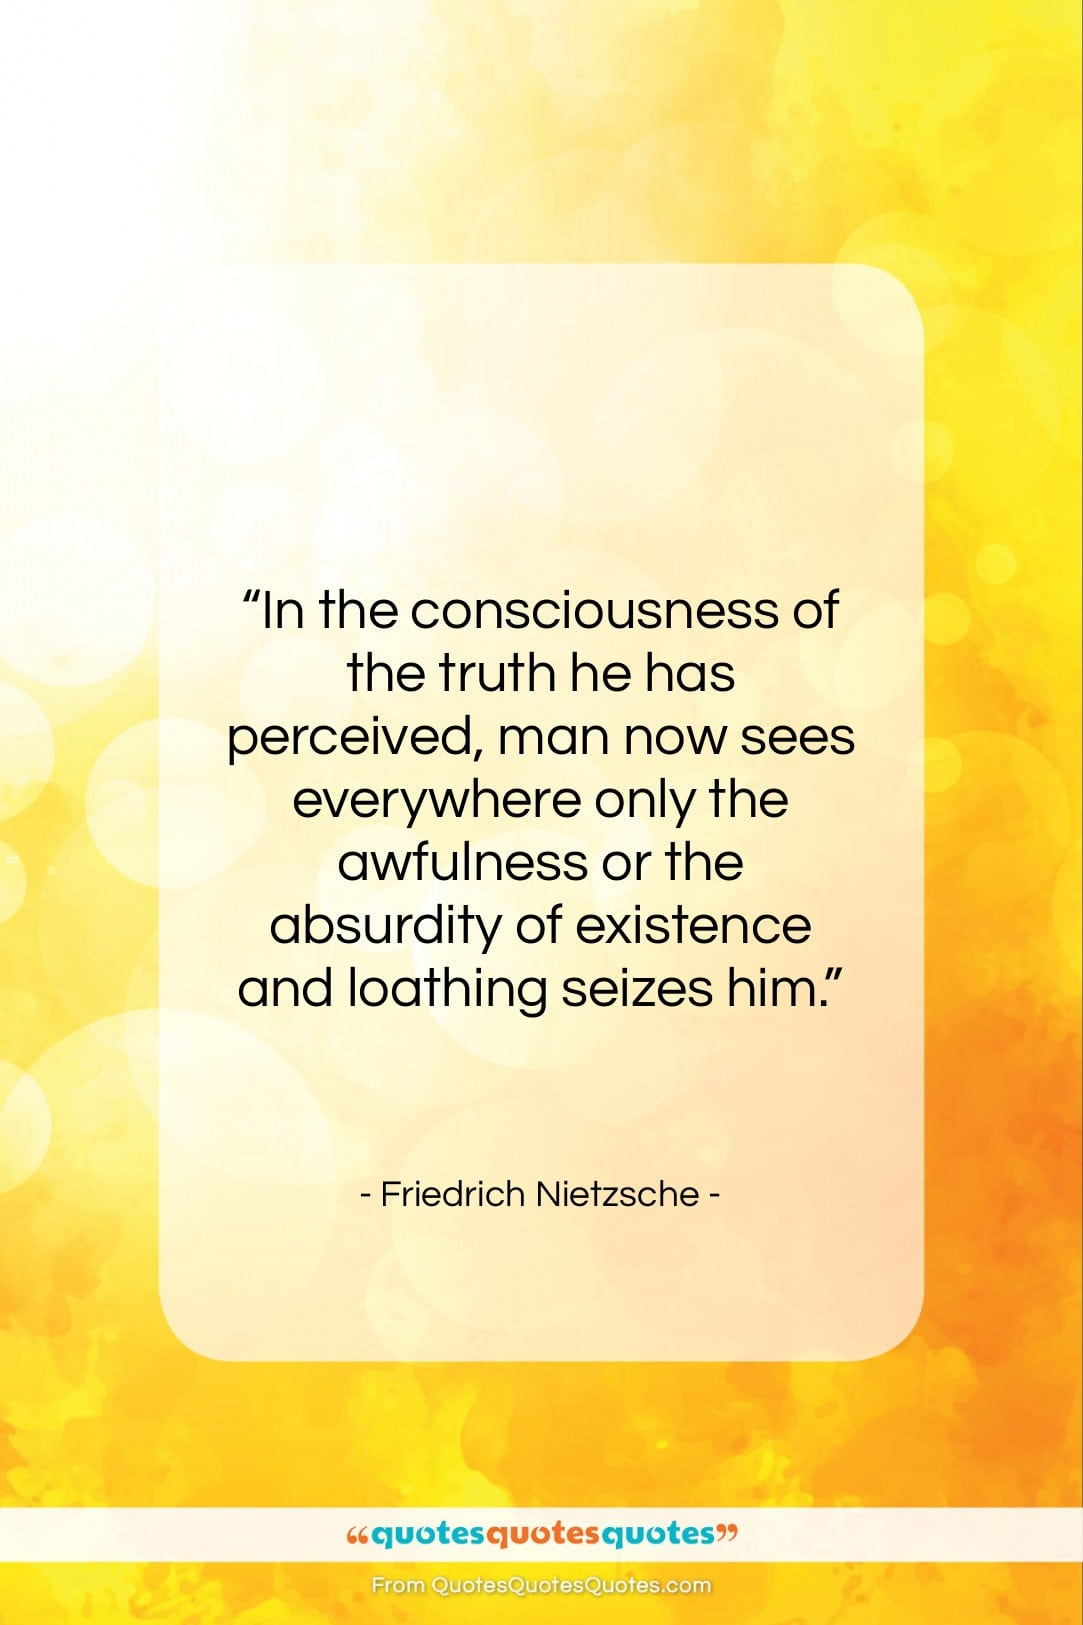 """Friedrich Nietzsche quote: """"In the consciousness of the truth he…""""- at QuotesQuotesQuotes.com"""